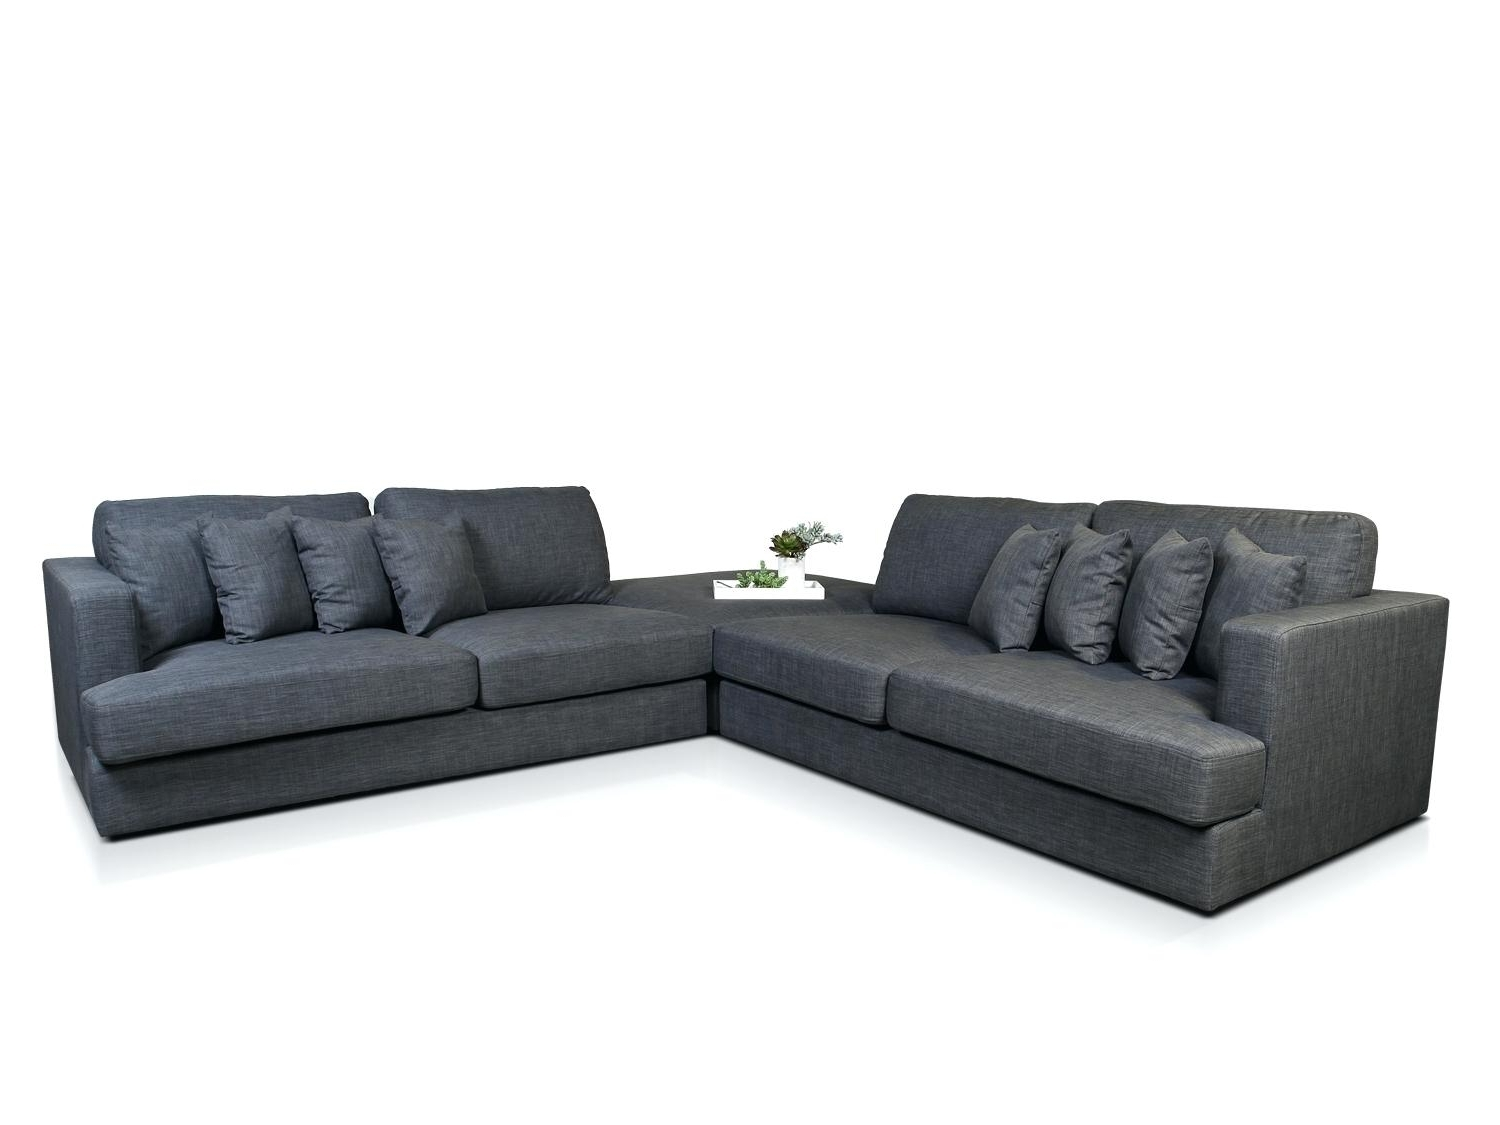 Favorite Small Modular Sofas In Modular Sofas Bedroom Furniture For Small Spaces Uk Used Sofa Sale (View 6 of 15)